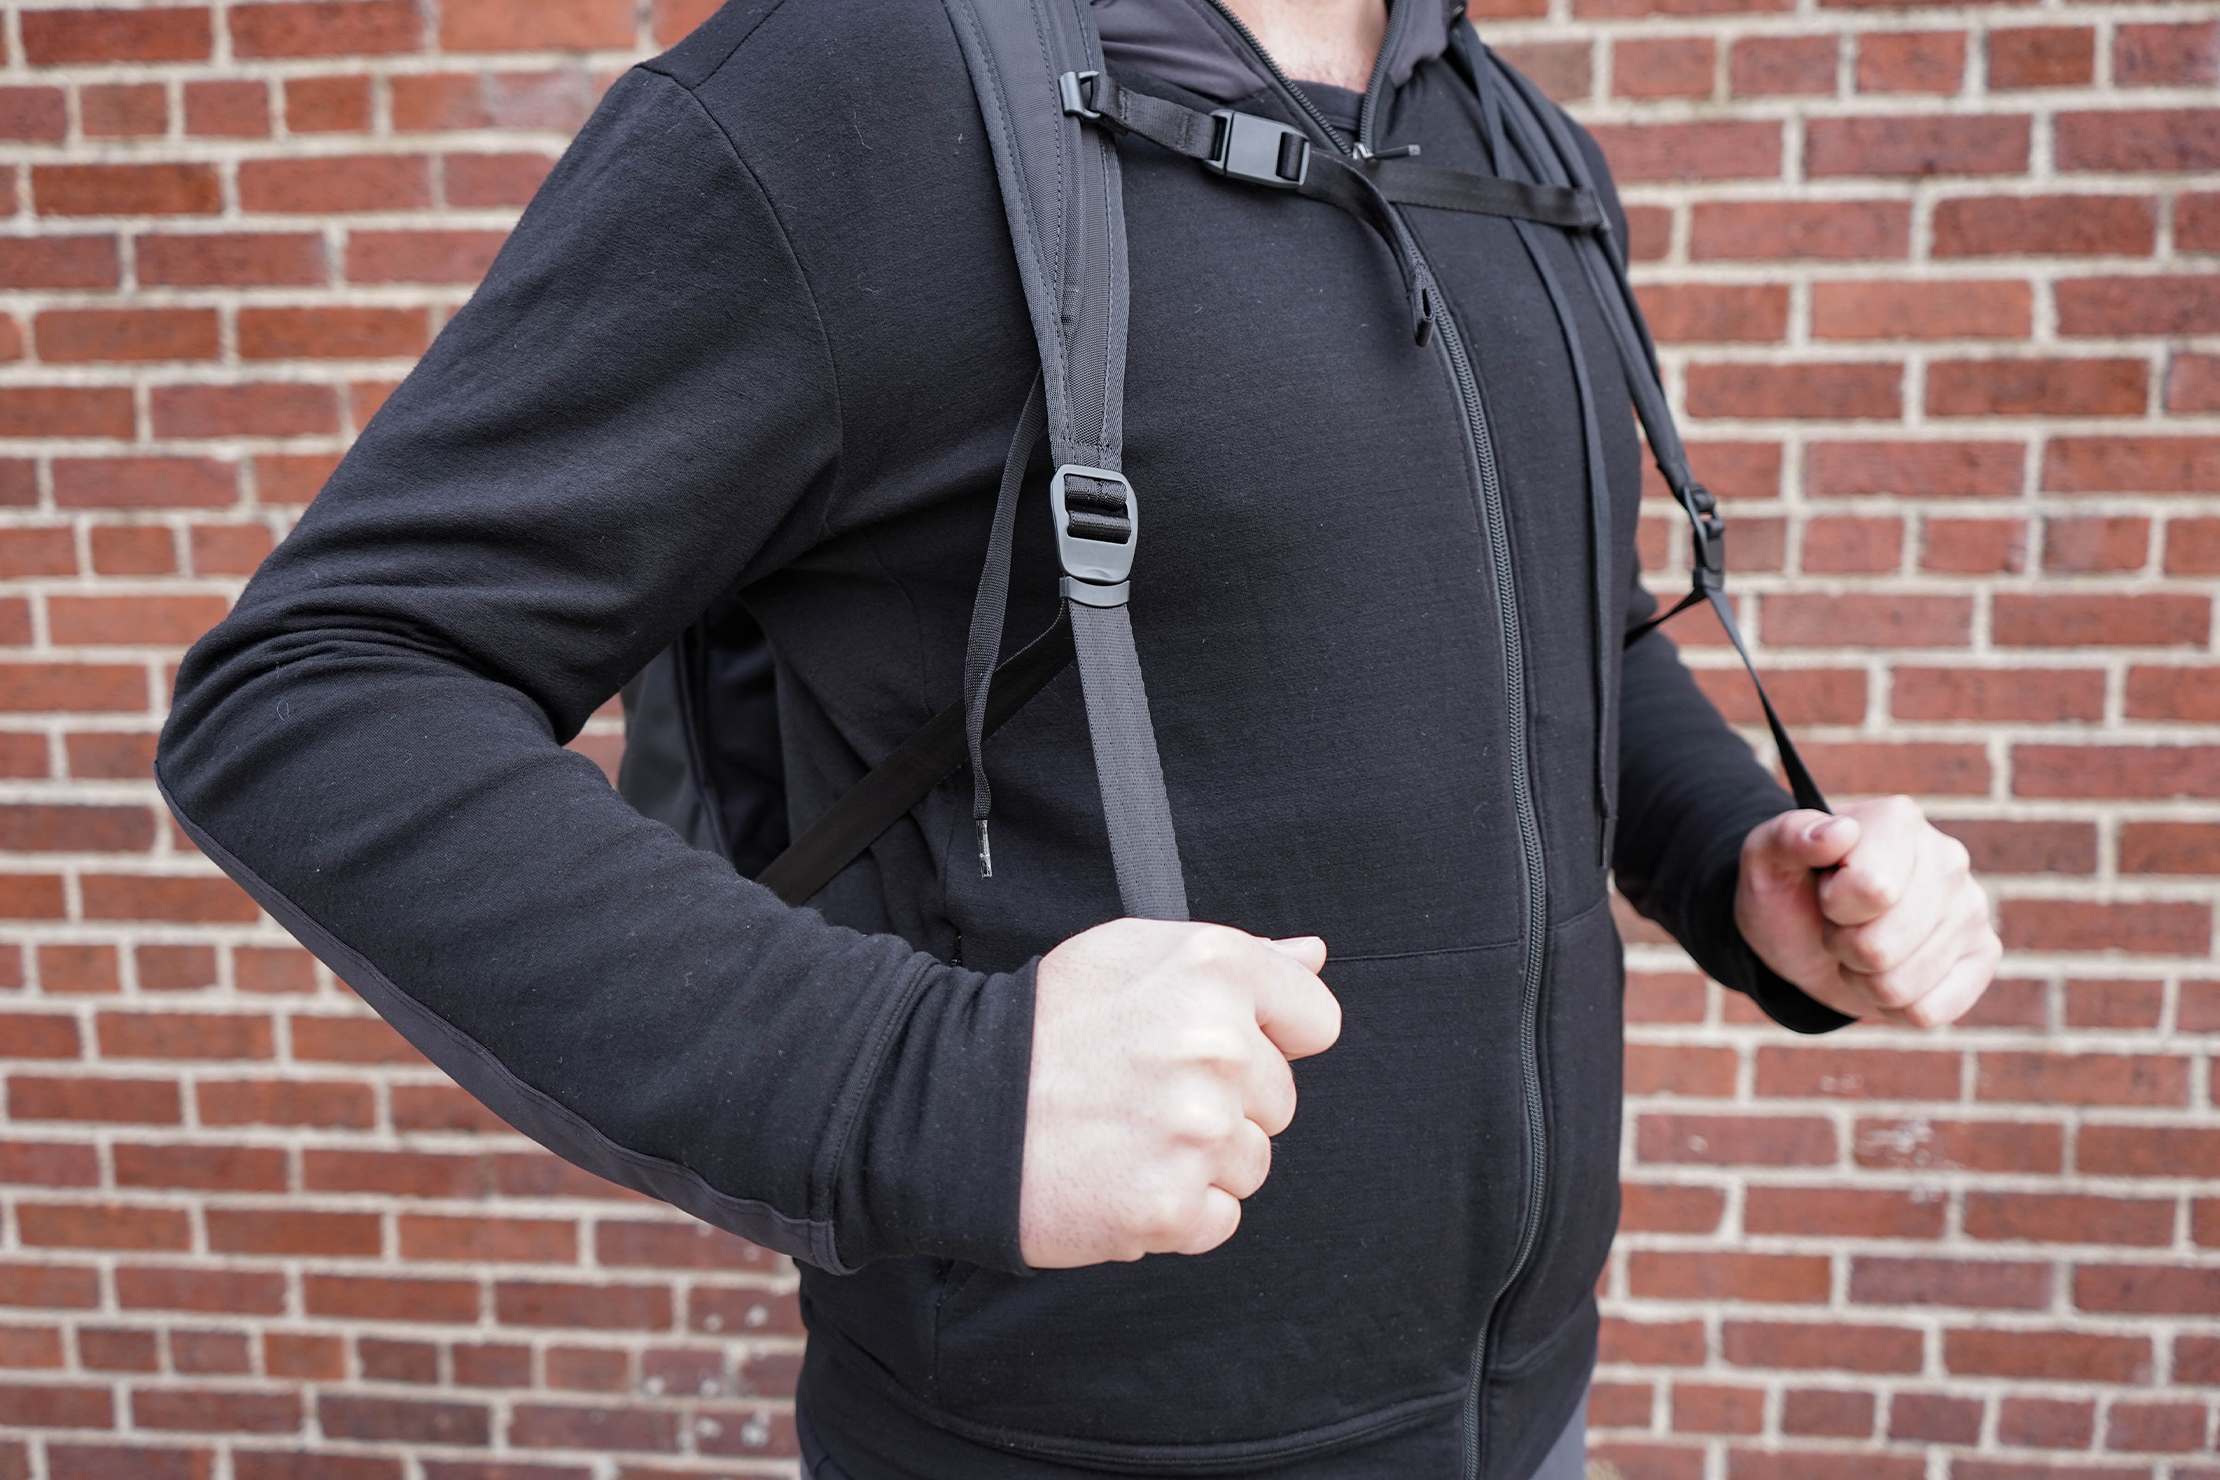 Bellroy Transit Backpack Shoulder Strap Adjustment